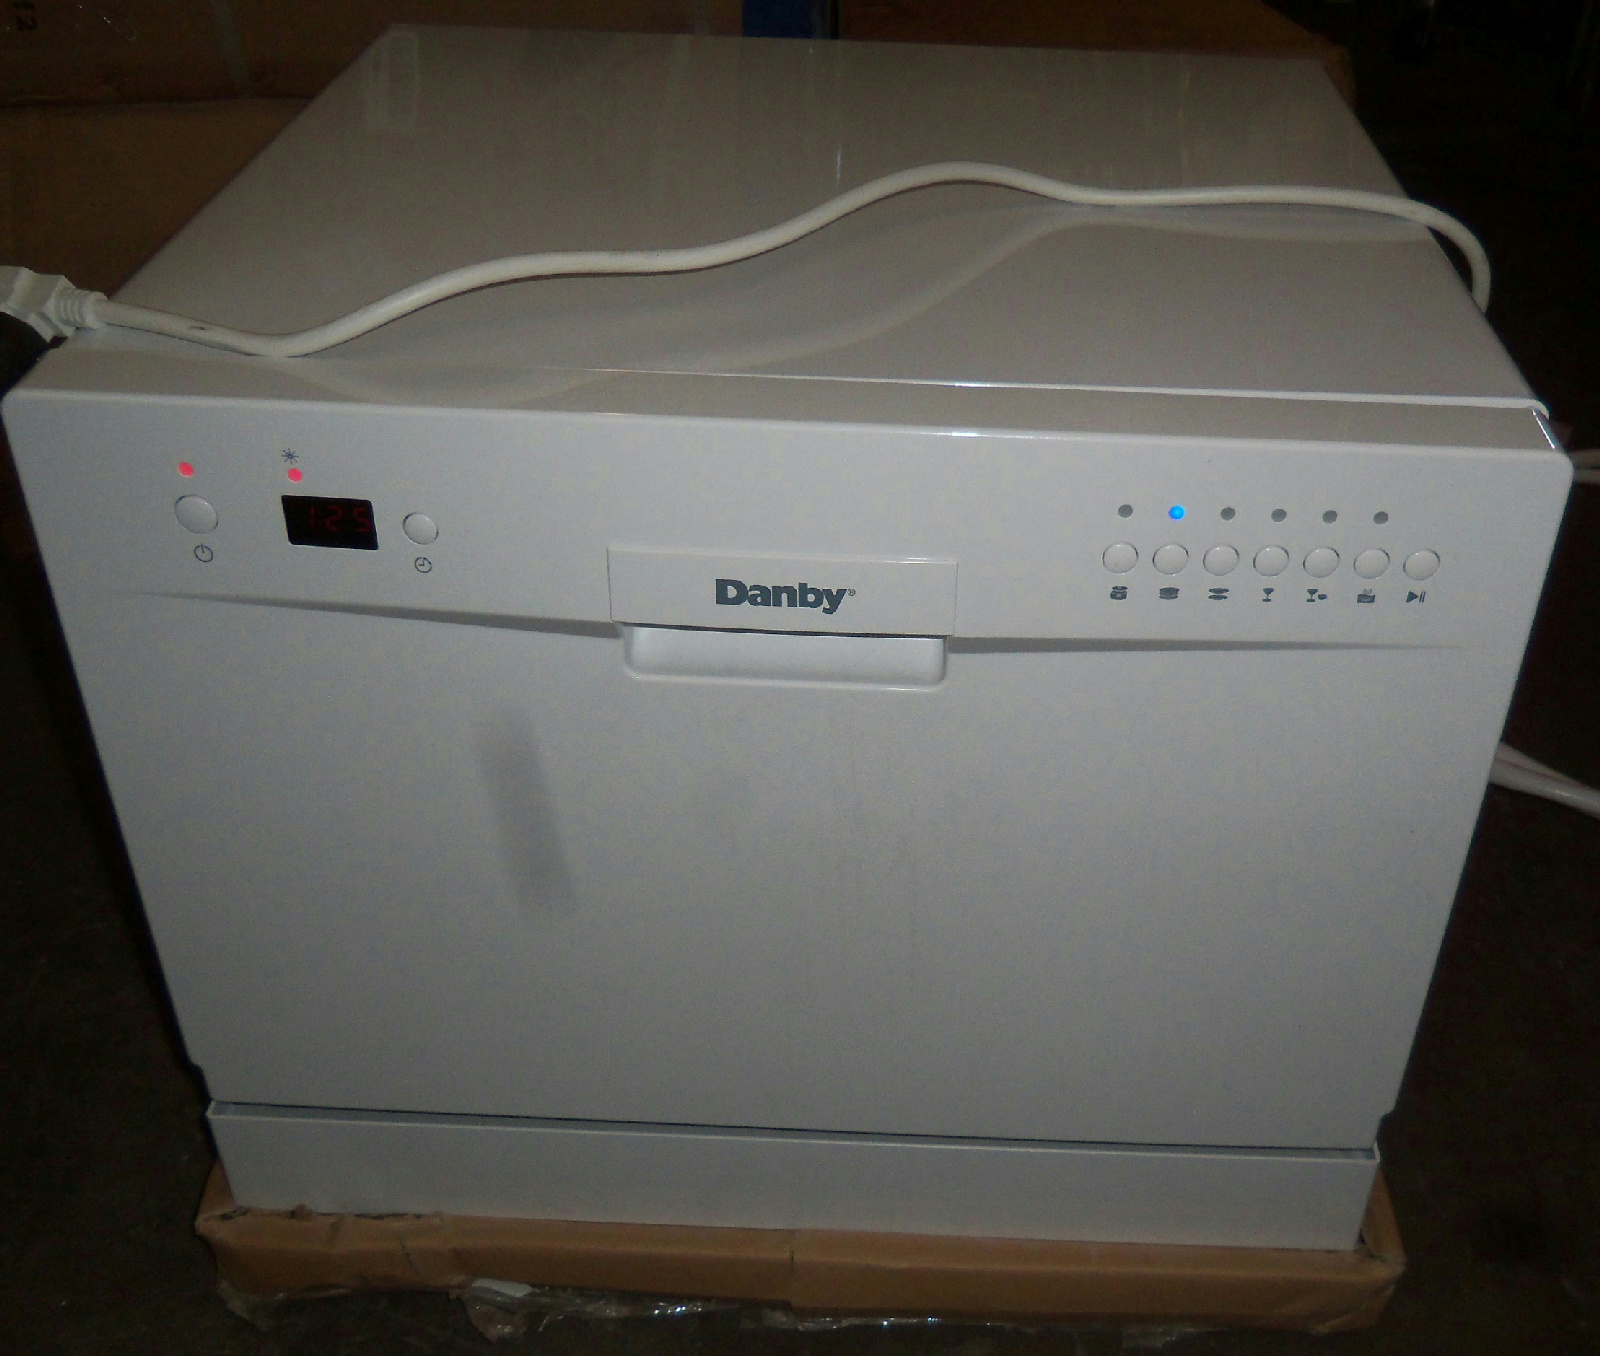 Countertop Dishwasher Manufacturers : ... manufacturer. The item does not carry any manufacturer warranty, even